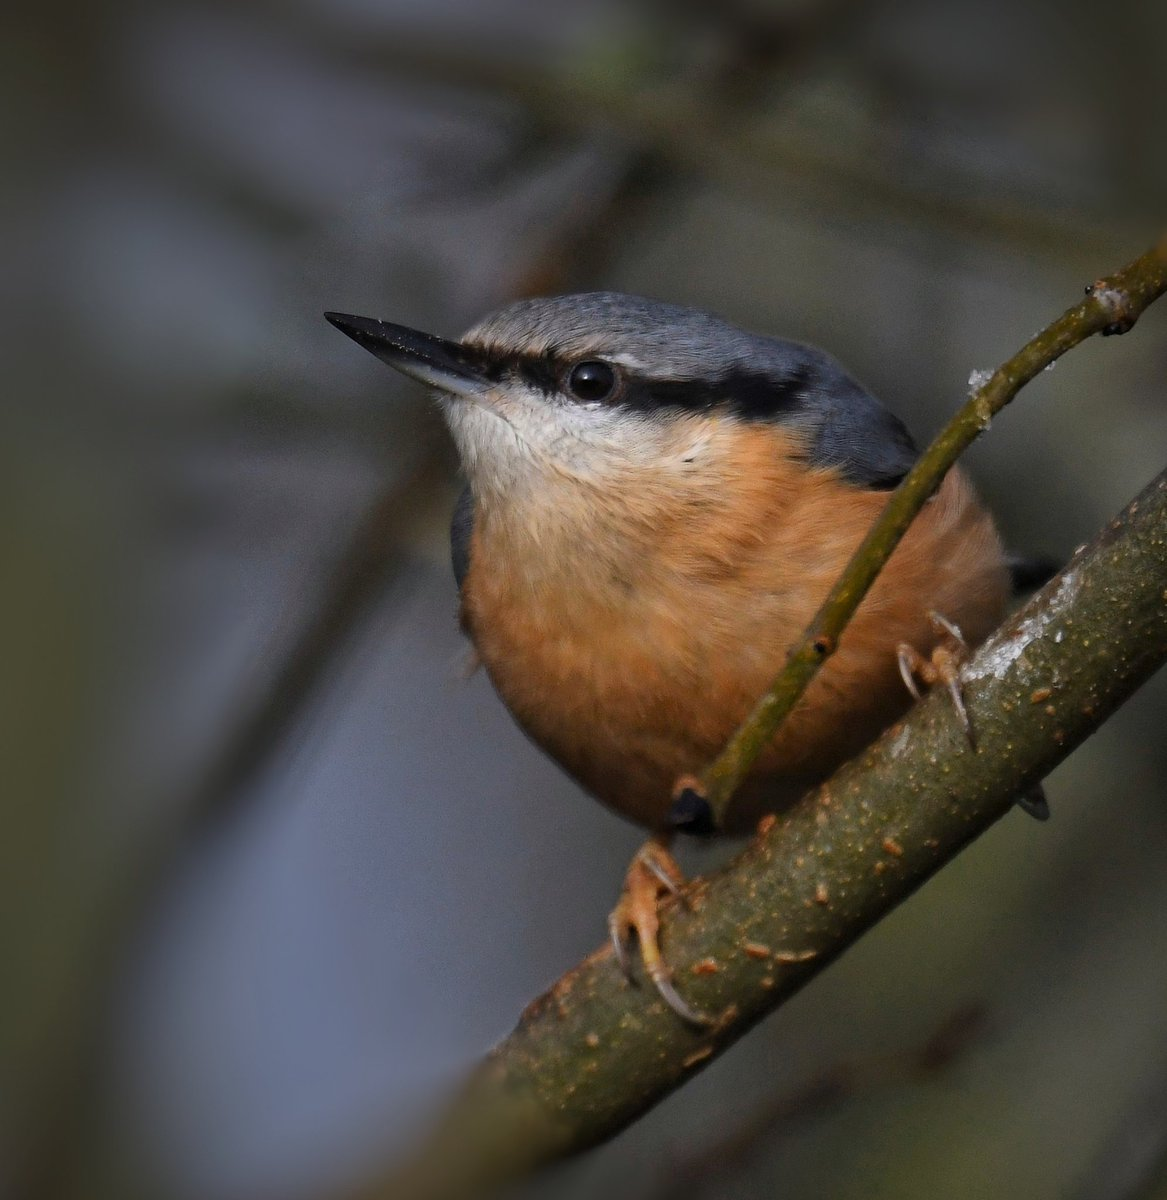 Eurasian Nuthatch ~ Wiltshire #TwitterNatureCommunity #RSPB #EarthCapture #NaturePhotography #UnderTheBirdWork #naturelovers